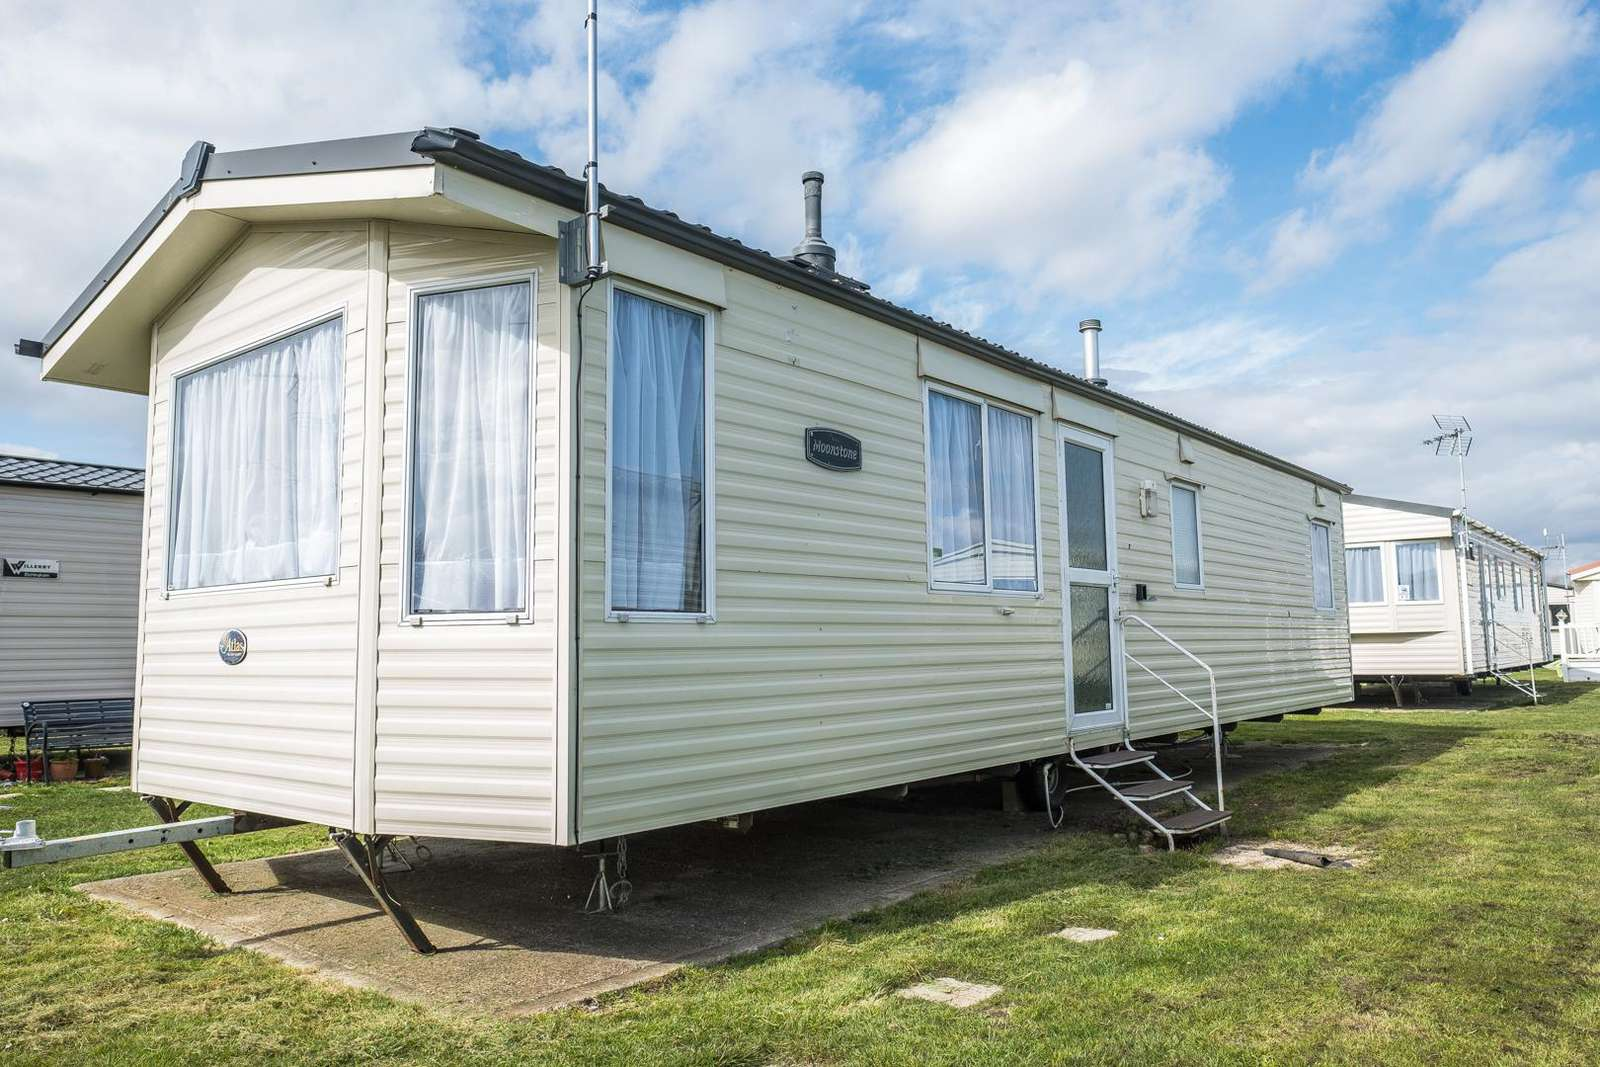 28021CW – Constable Way area, 3 bed, 6 berth caravan near to amenities. Emerald rated. - property